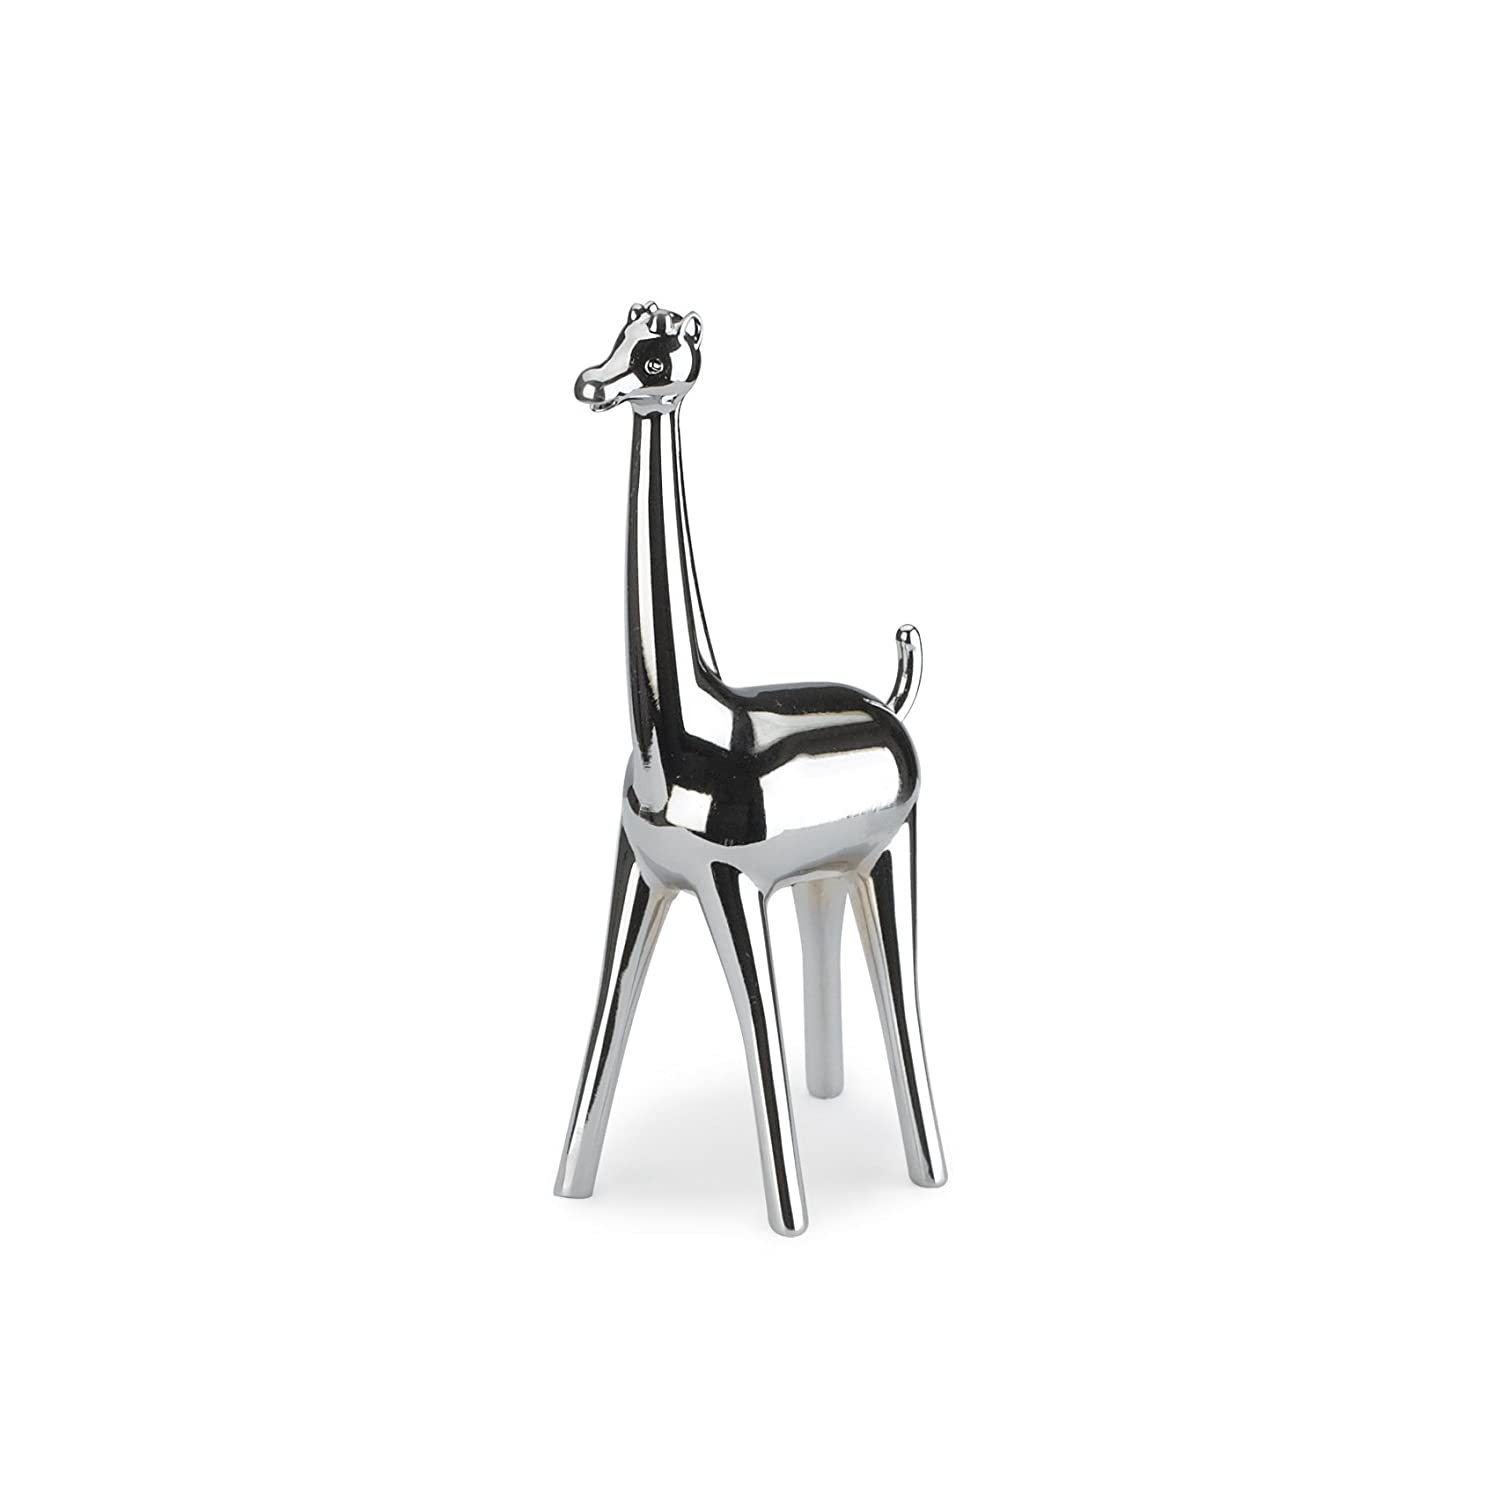 Umbra Zoola Giraffe Ring Holder, Chrome